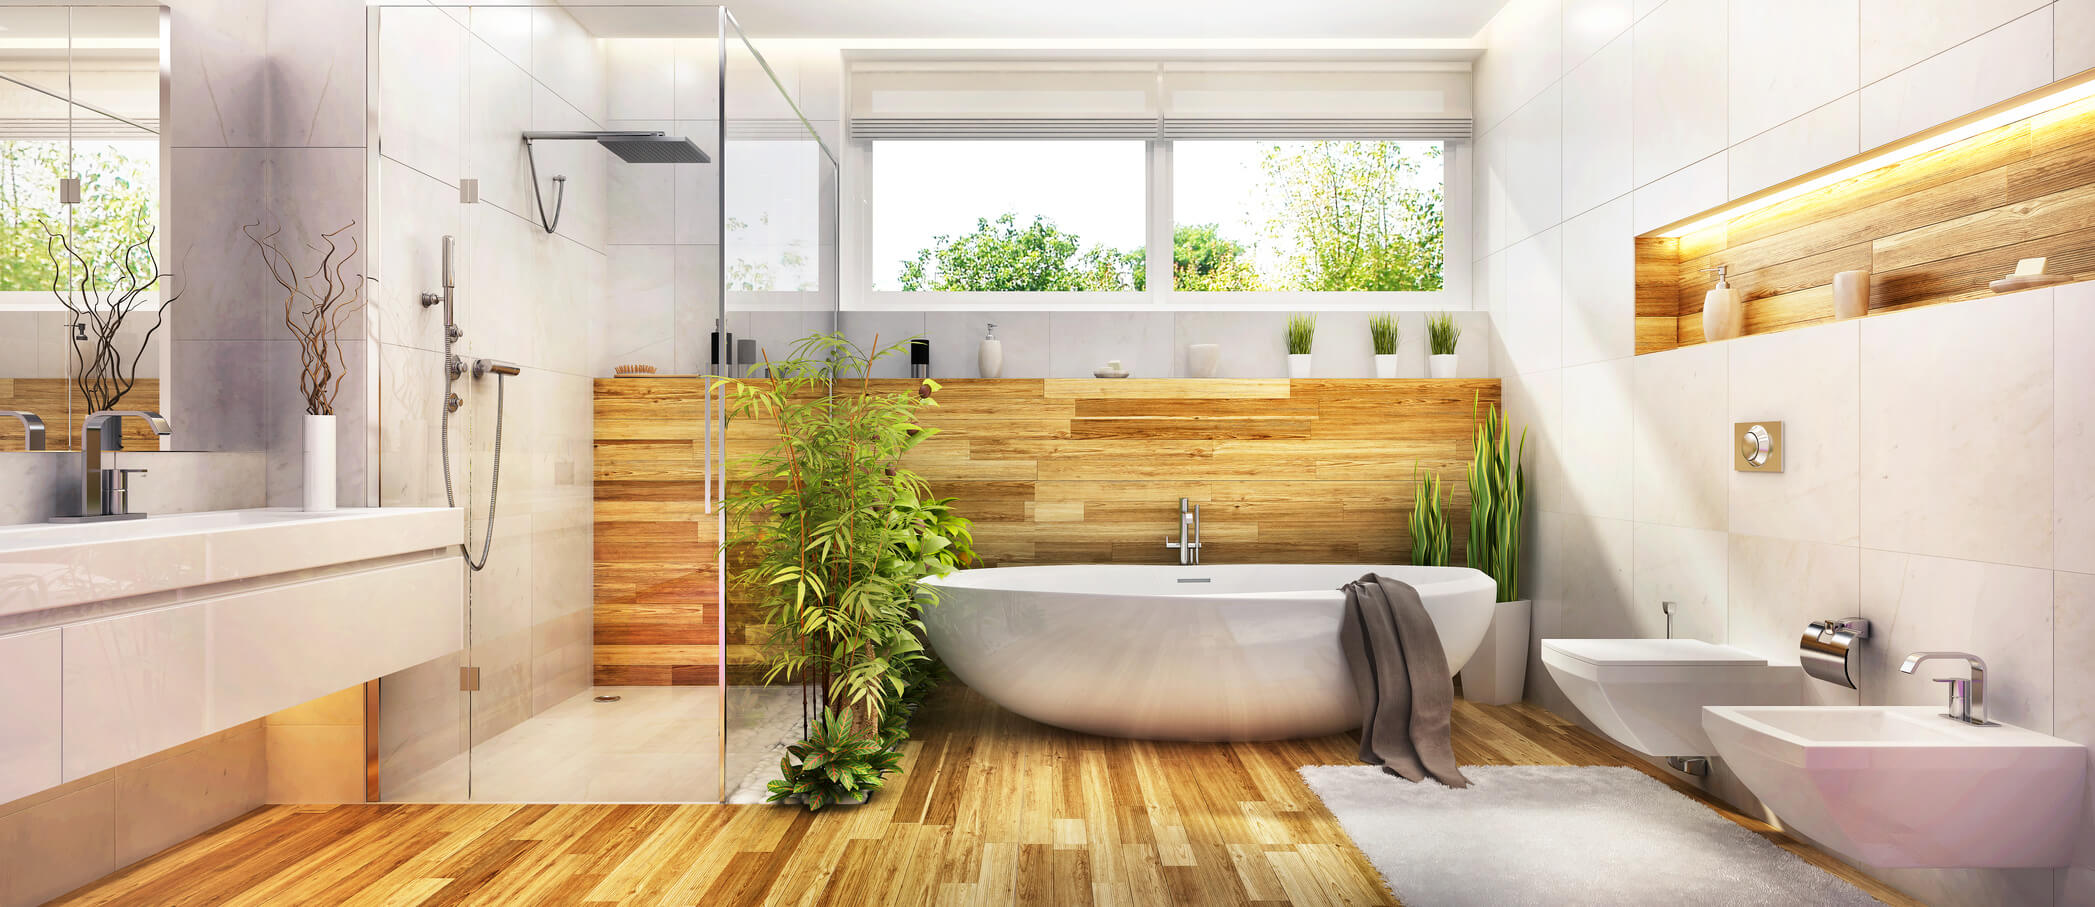 The Benefits Of Working With Wood In Home Interior Design Interior Design Design News And Architecture Trends